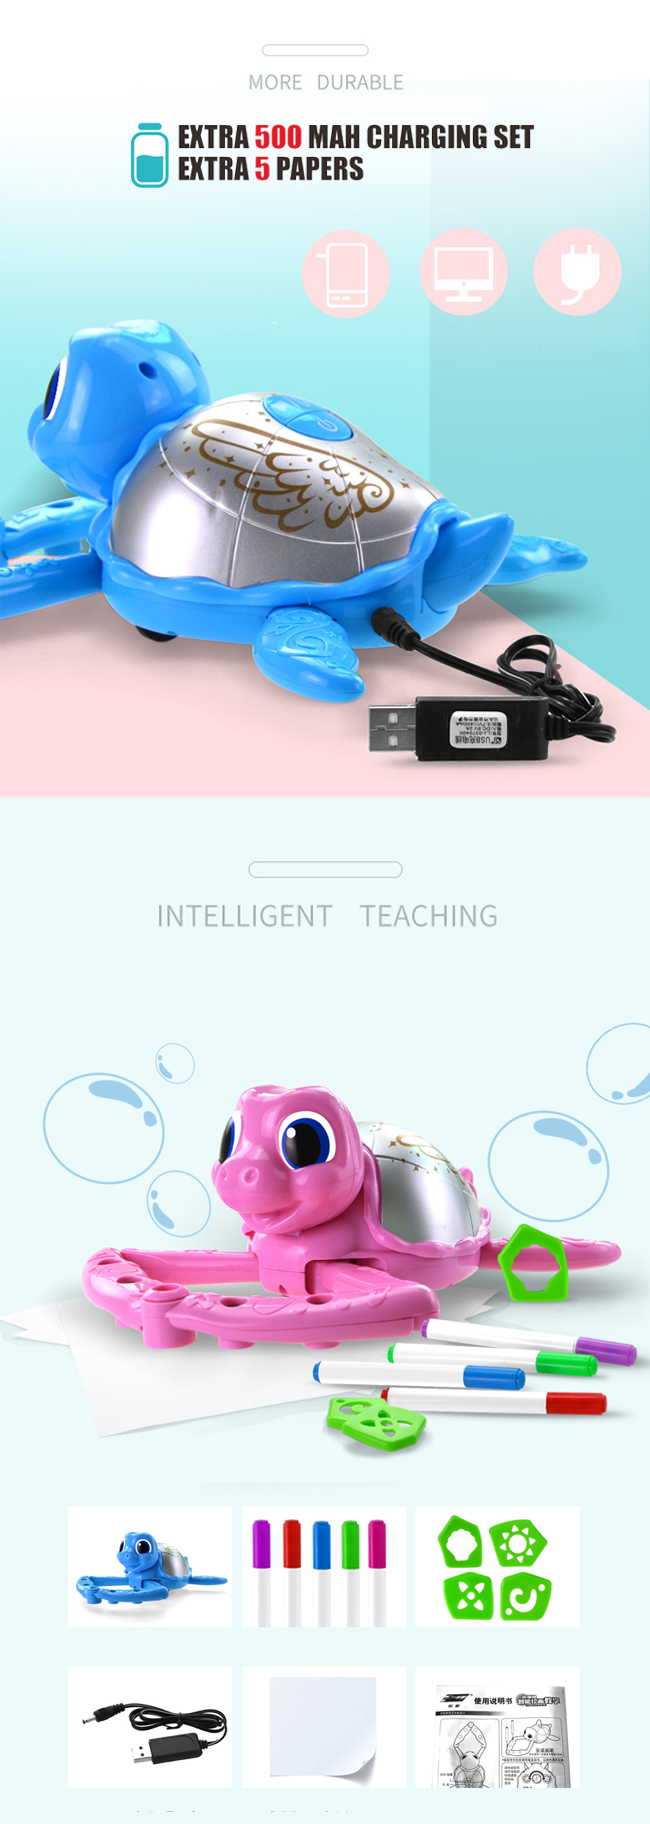 Hot sales electric turtle DIY painting toy educational toy for kids